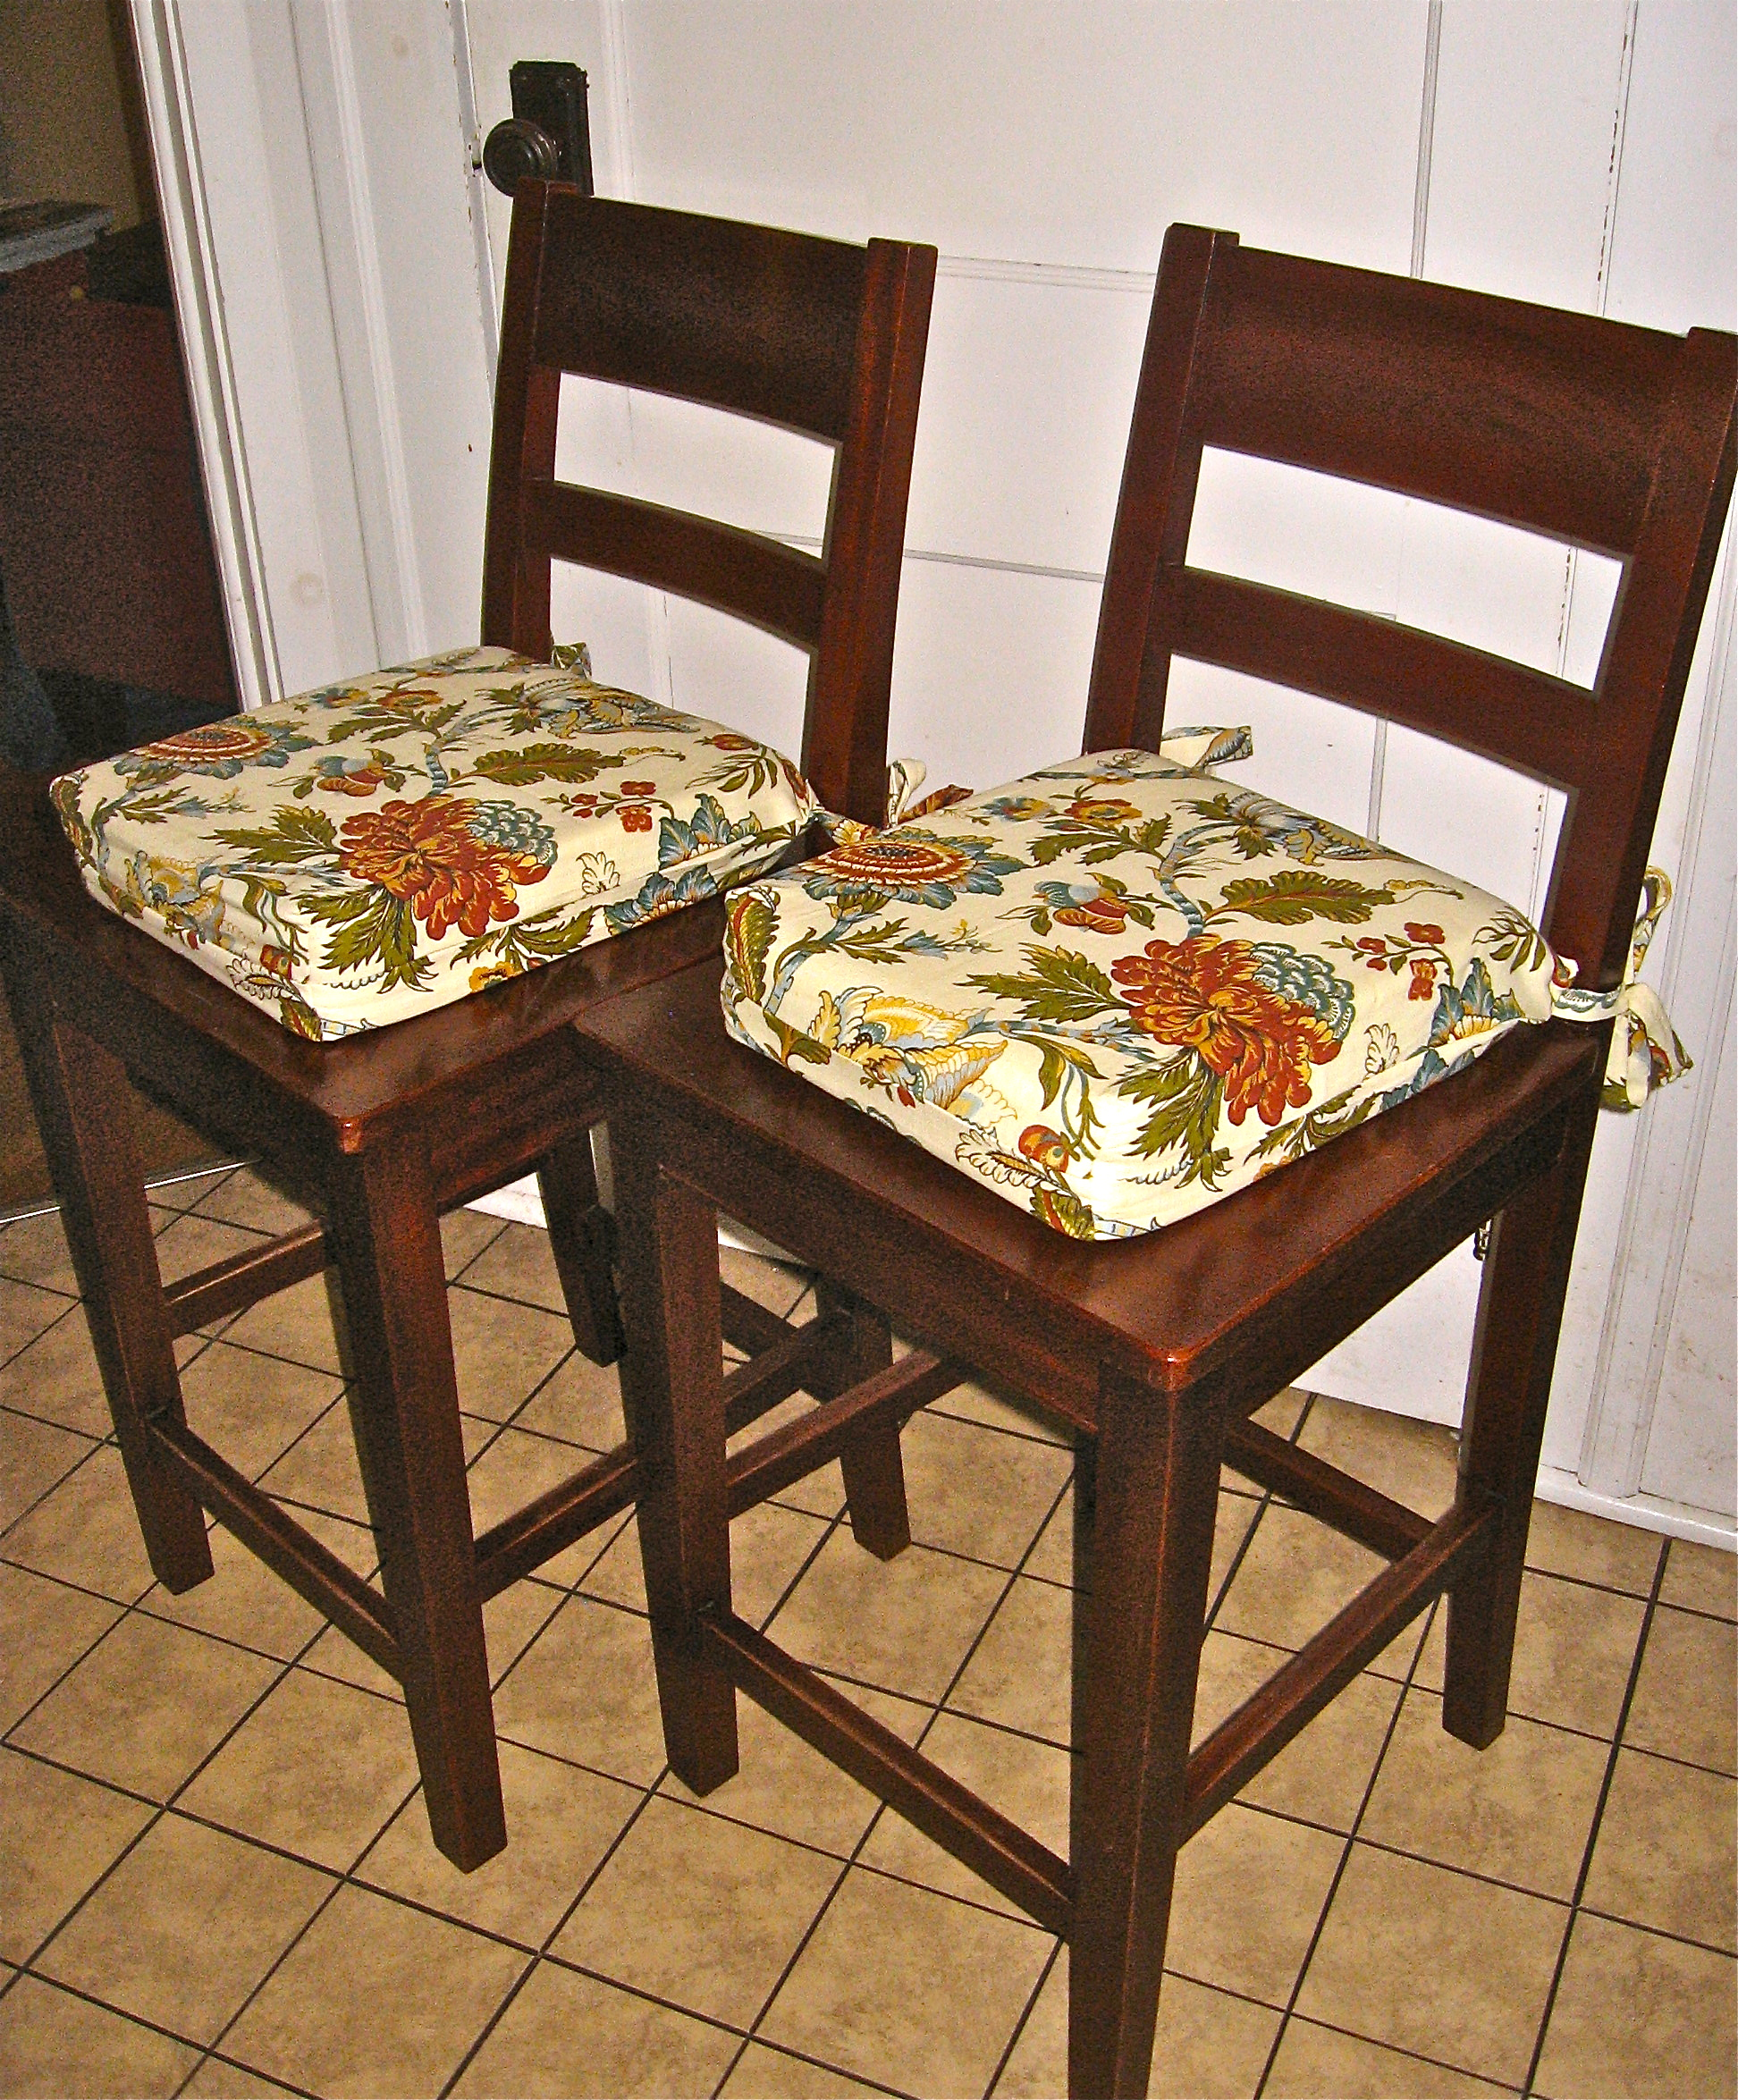 Chairs For The Kitchen: Kitchen Chair Cushions